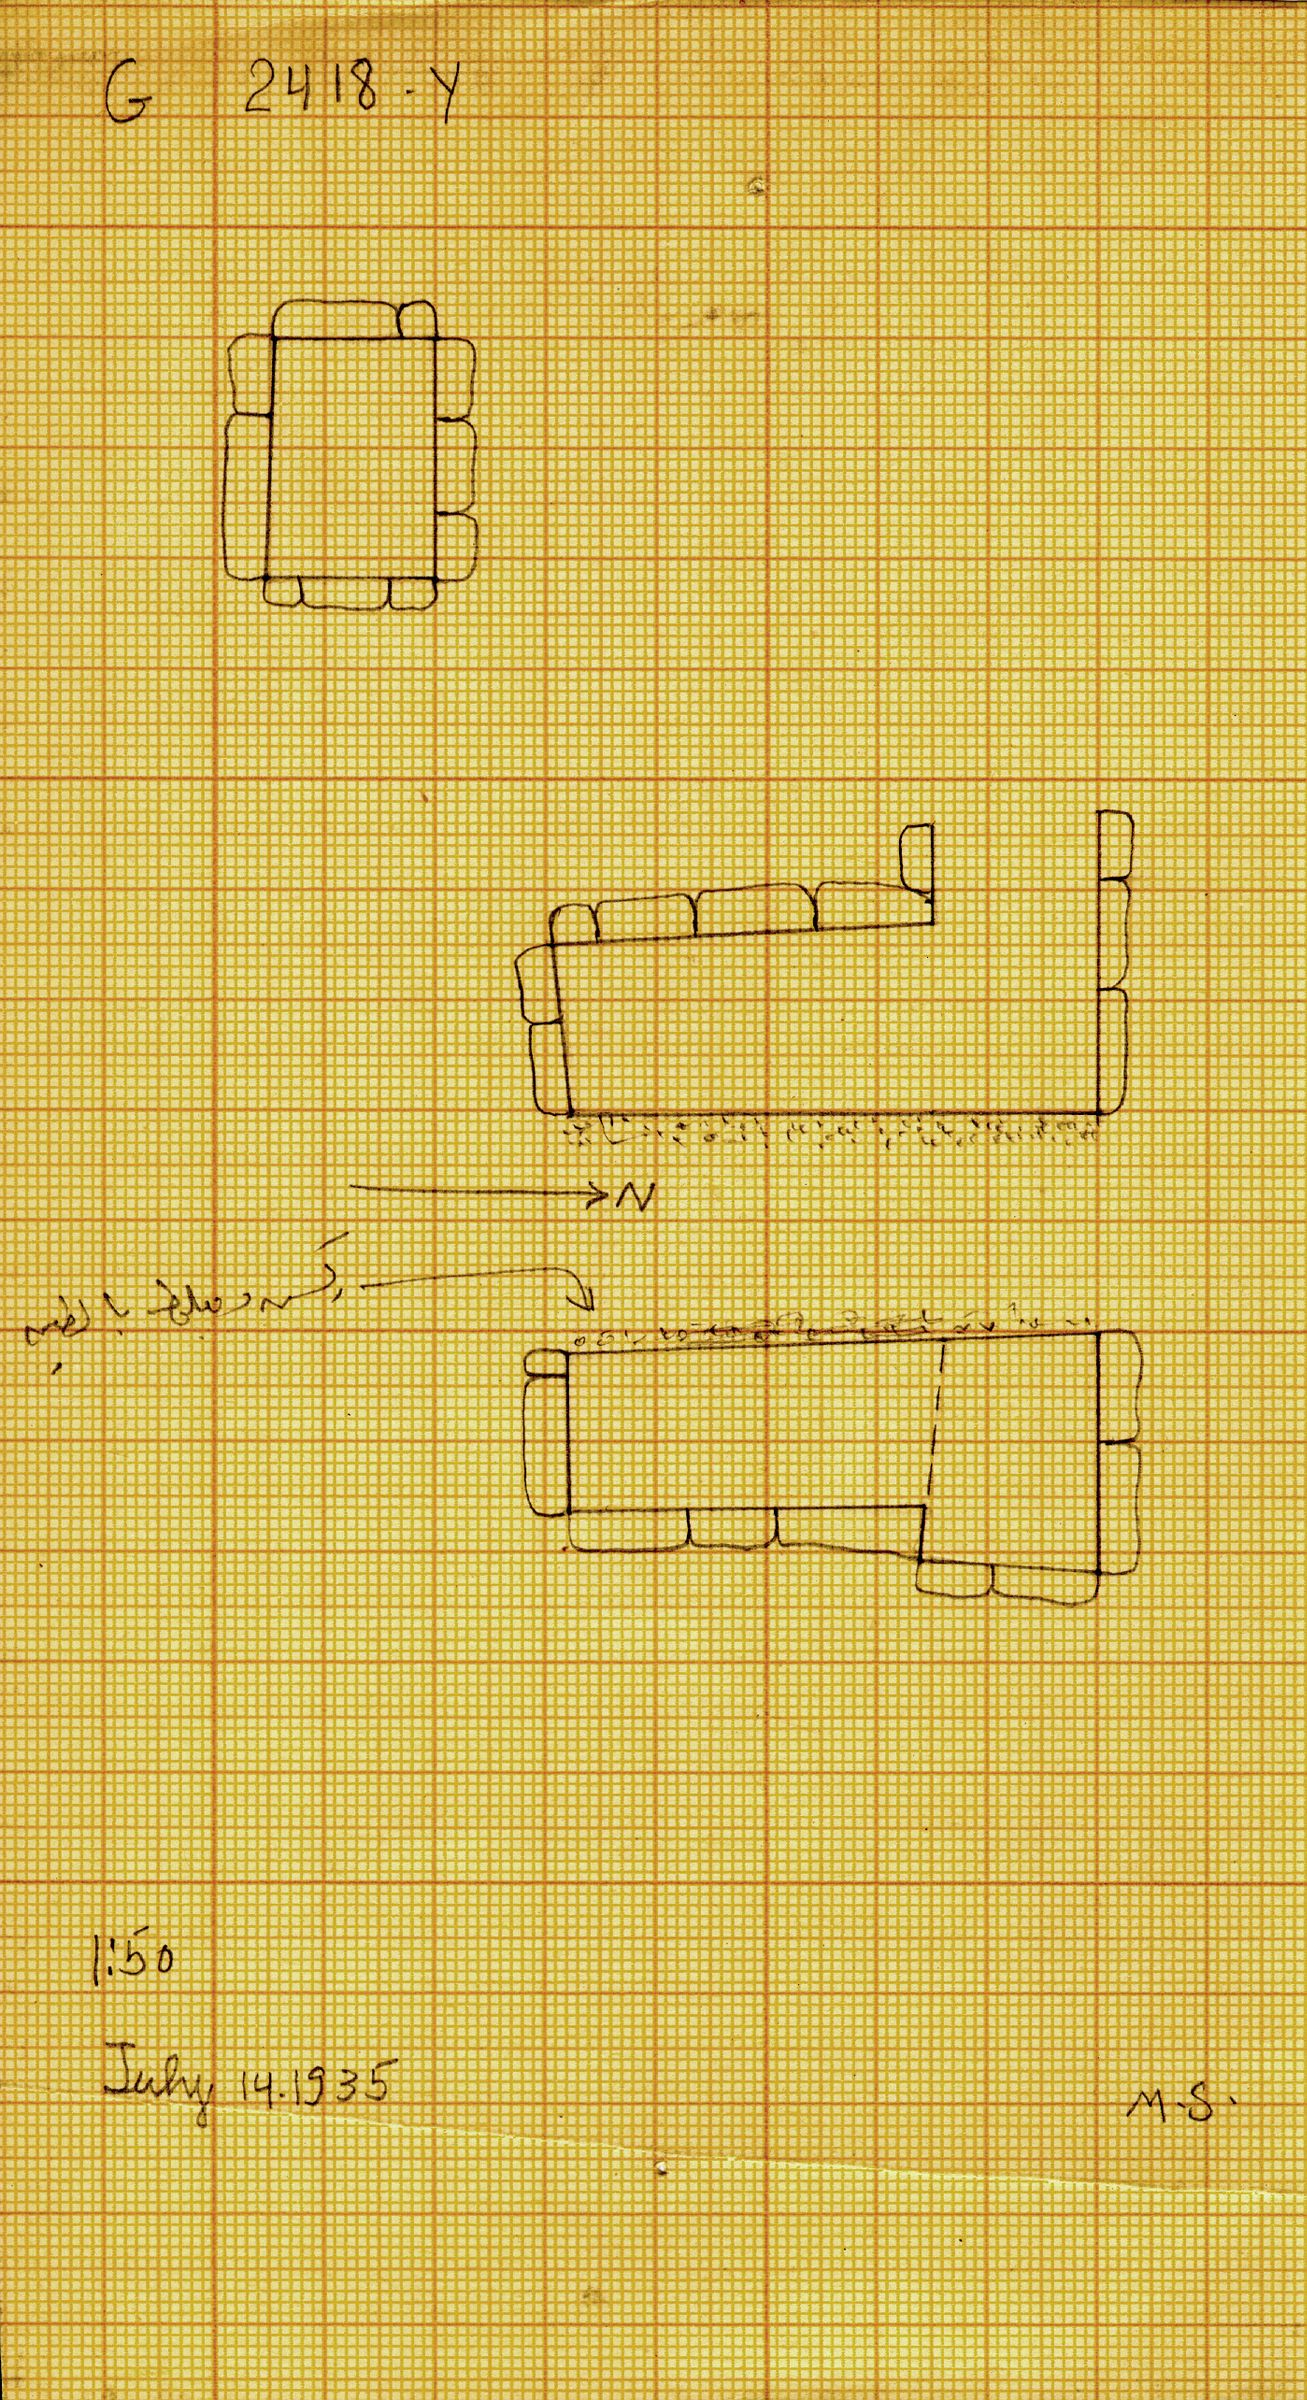 Maps and plans: G 2418, Shaft Y